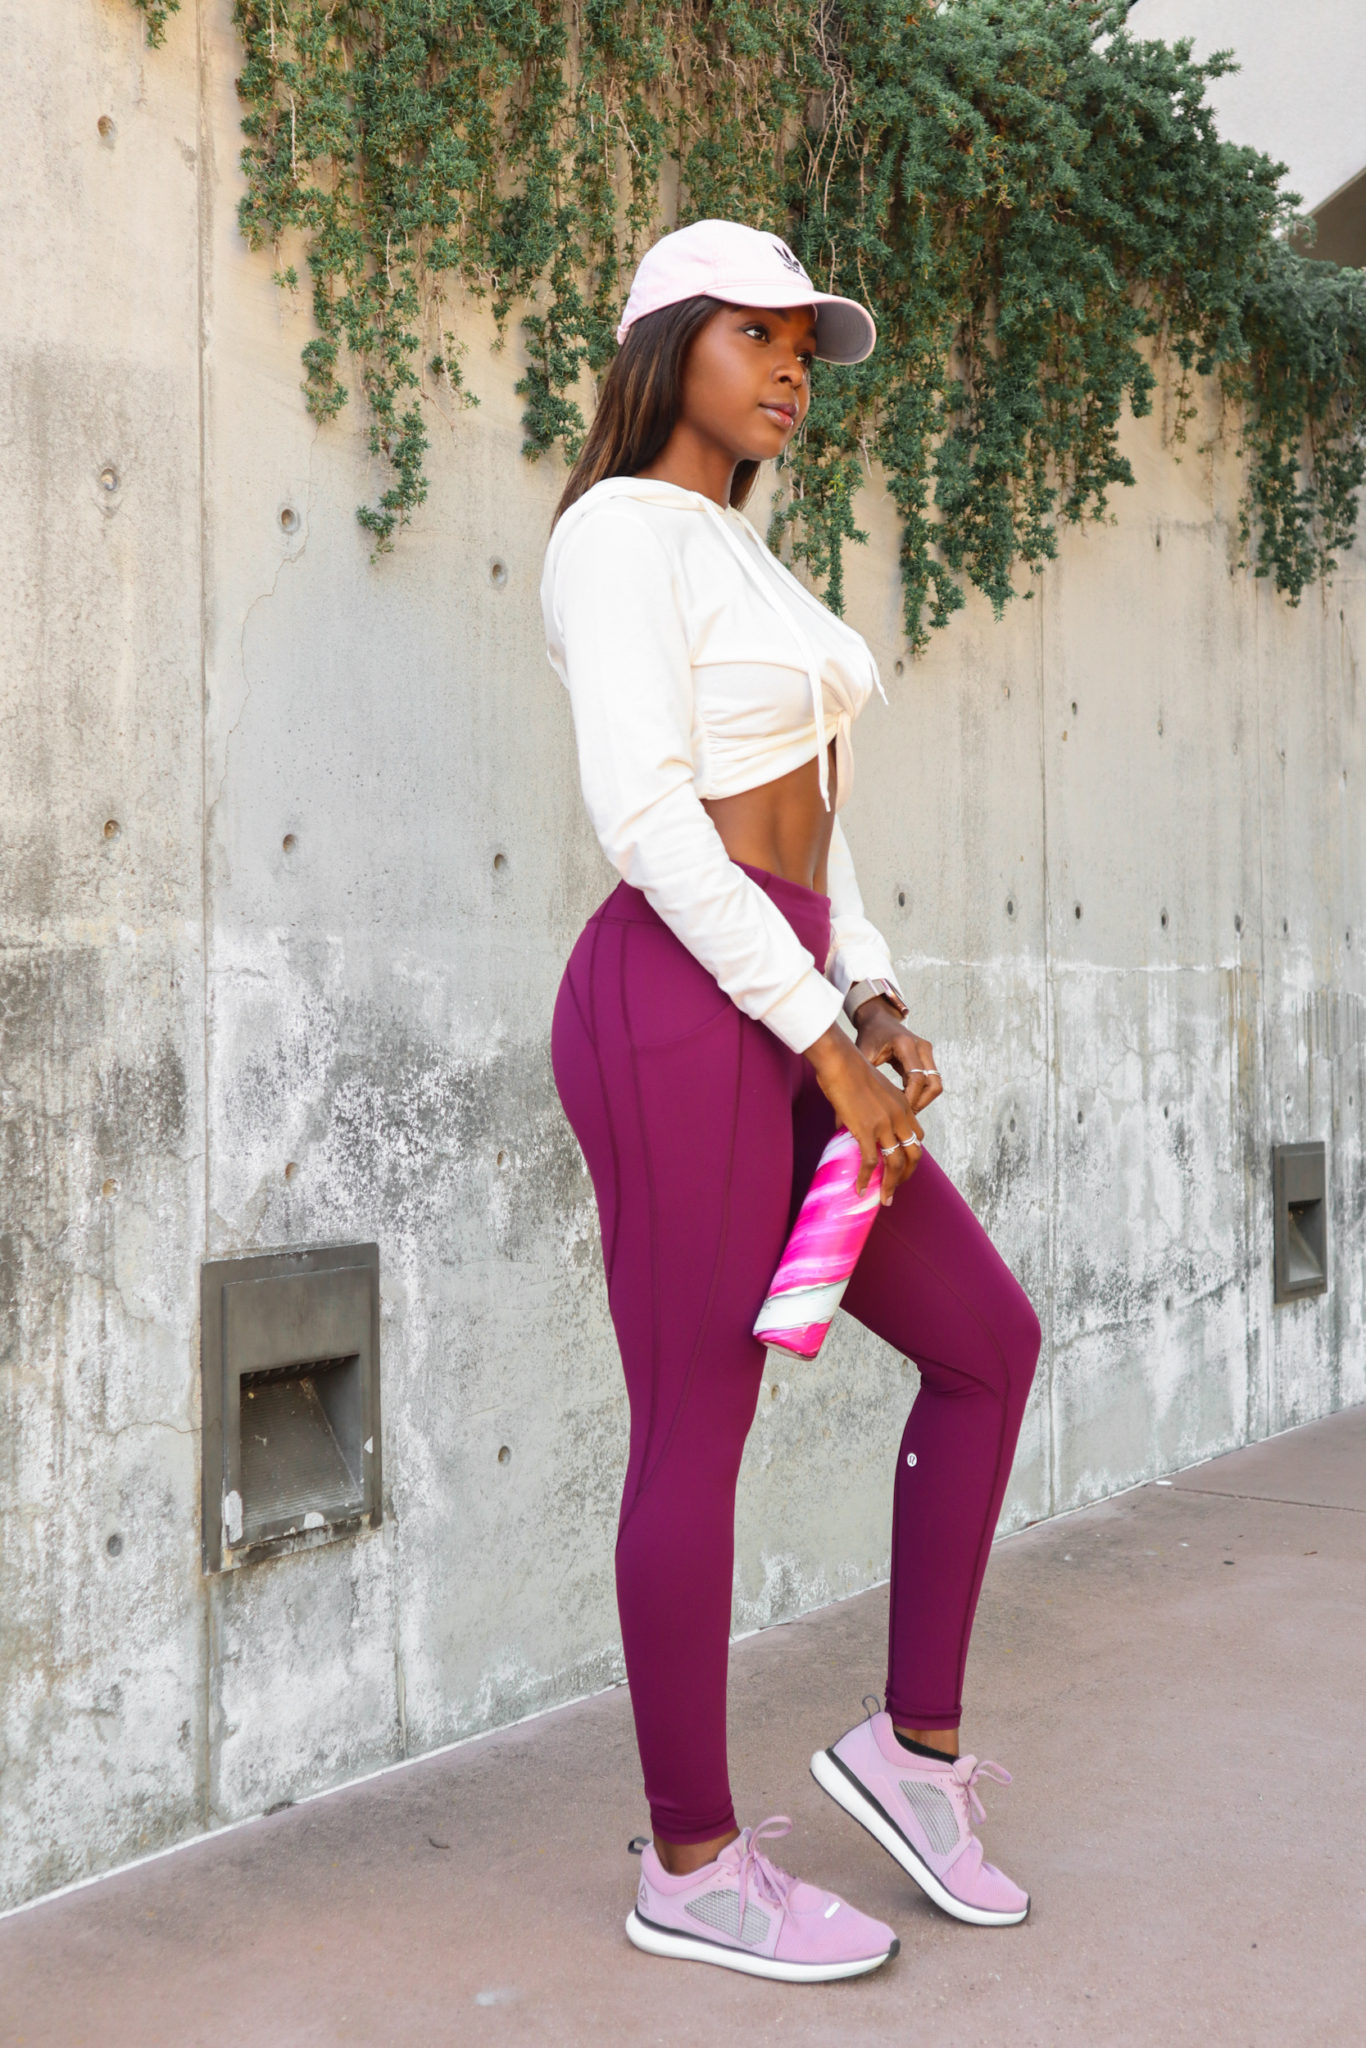 Lululemon Legging Review: Time To Sweat Tight